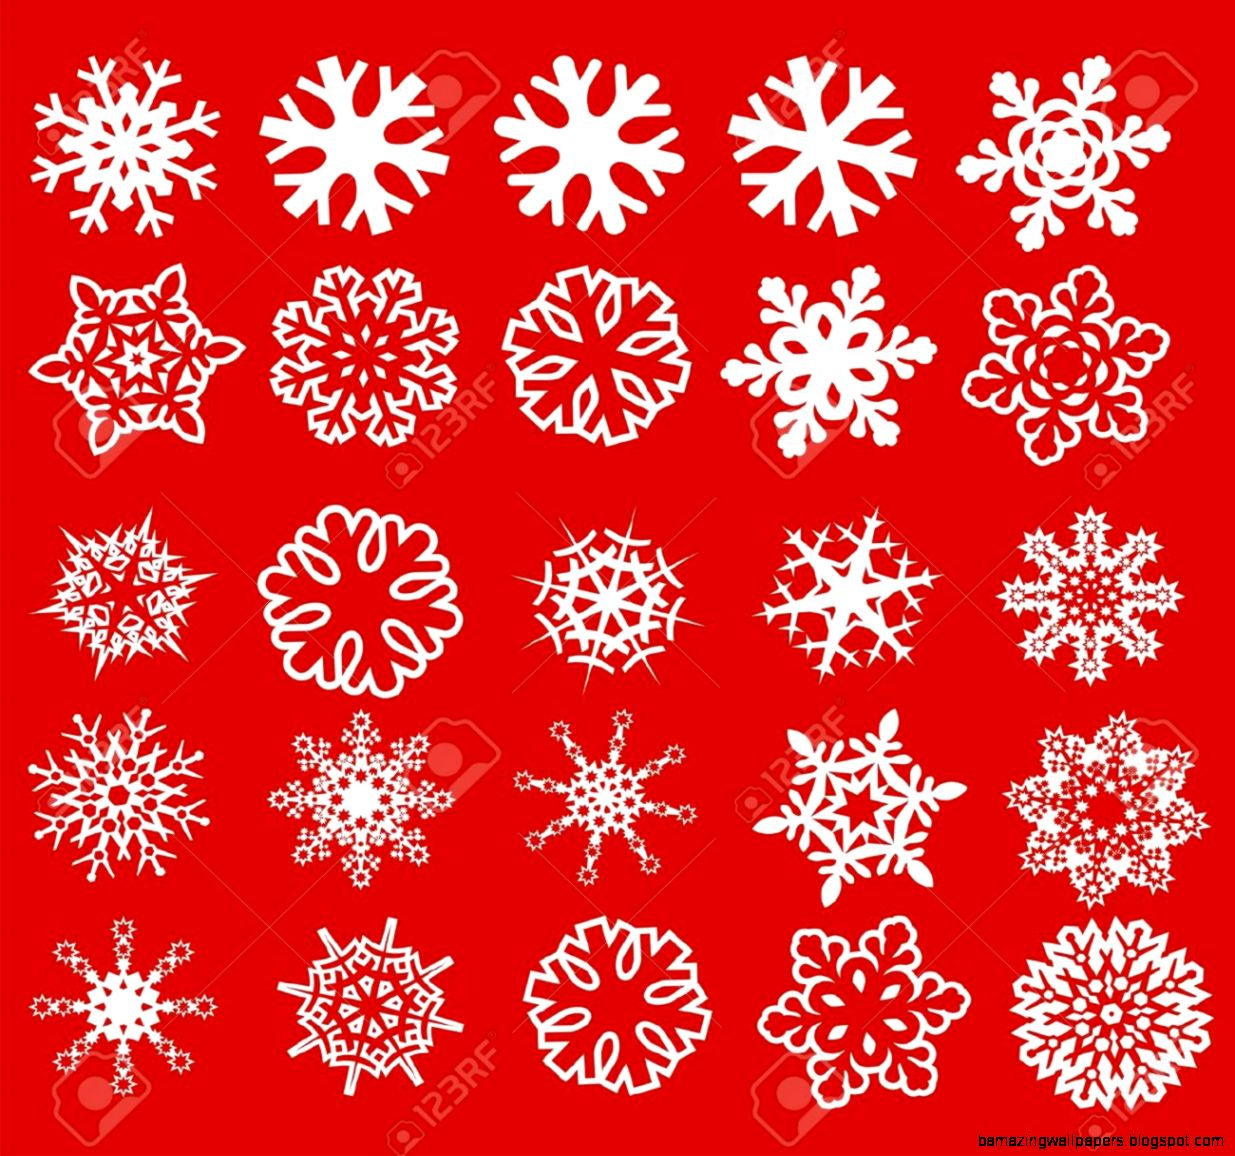 Snowflake Clipart Royalty Free Cliparts Vectors And Stock